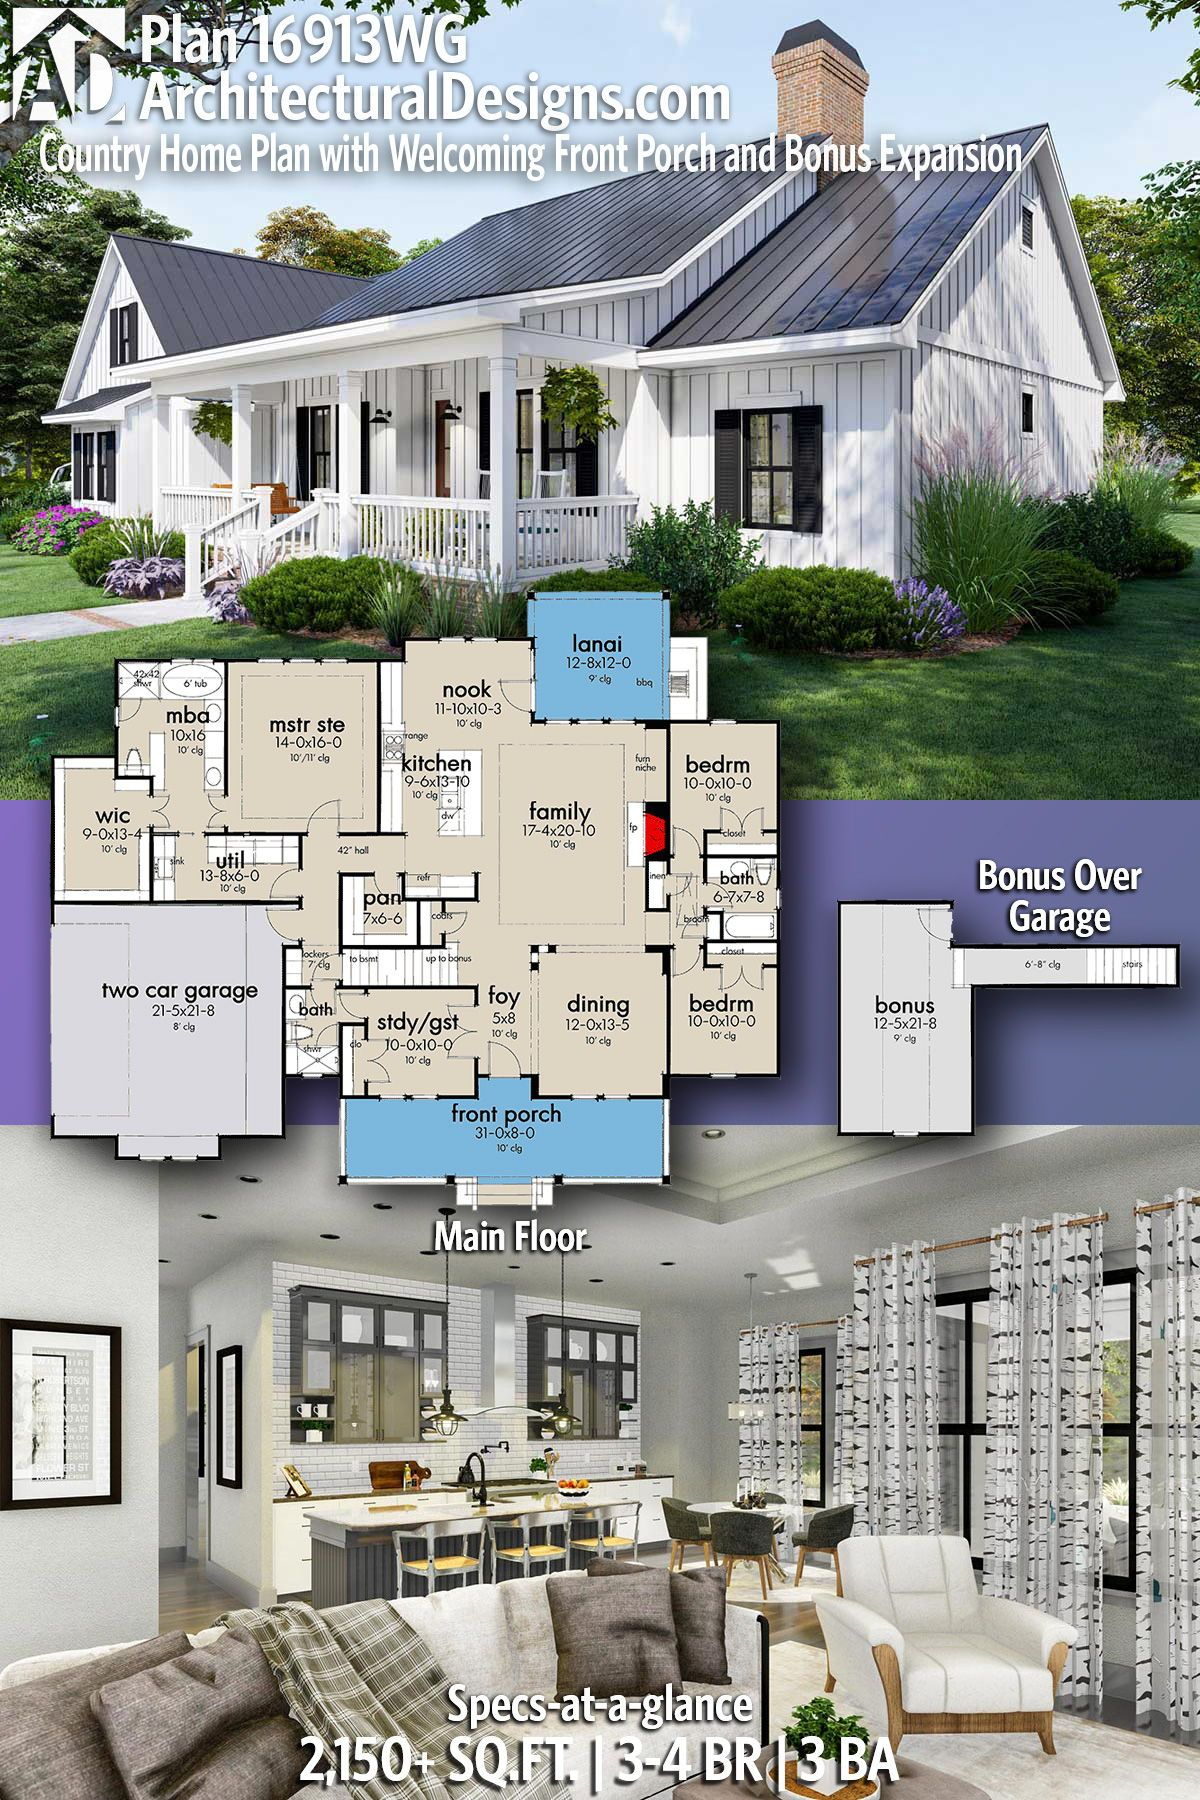 Plan 16913wg Country Home Plan With Welcoming Front Porch And Bonus Expansion Country House Plans Farmhouse Plans Modern Farmhouse Plans